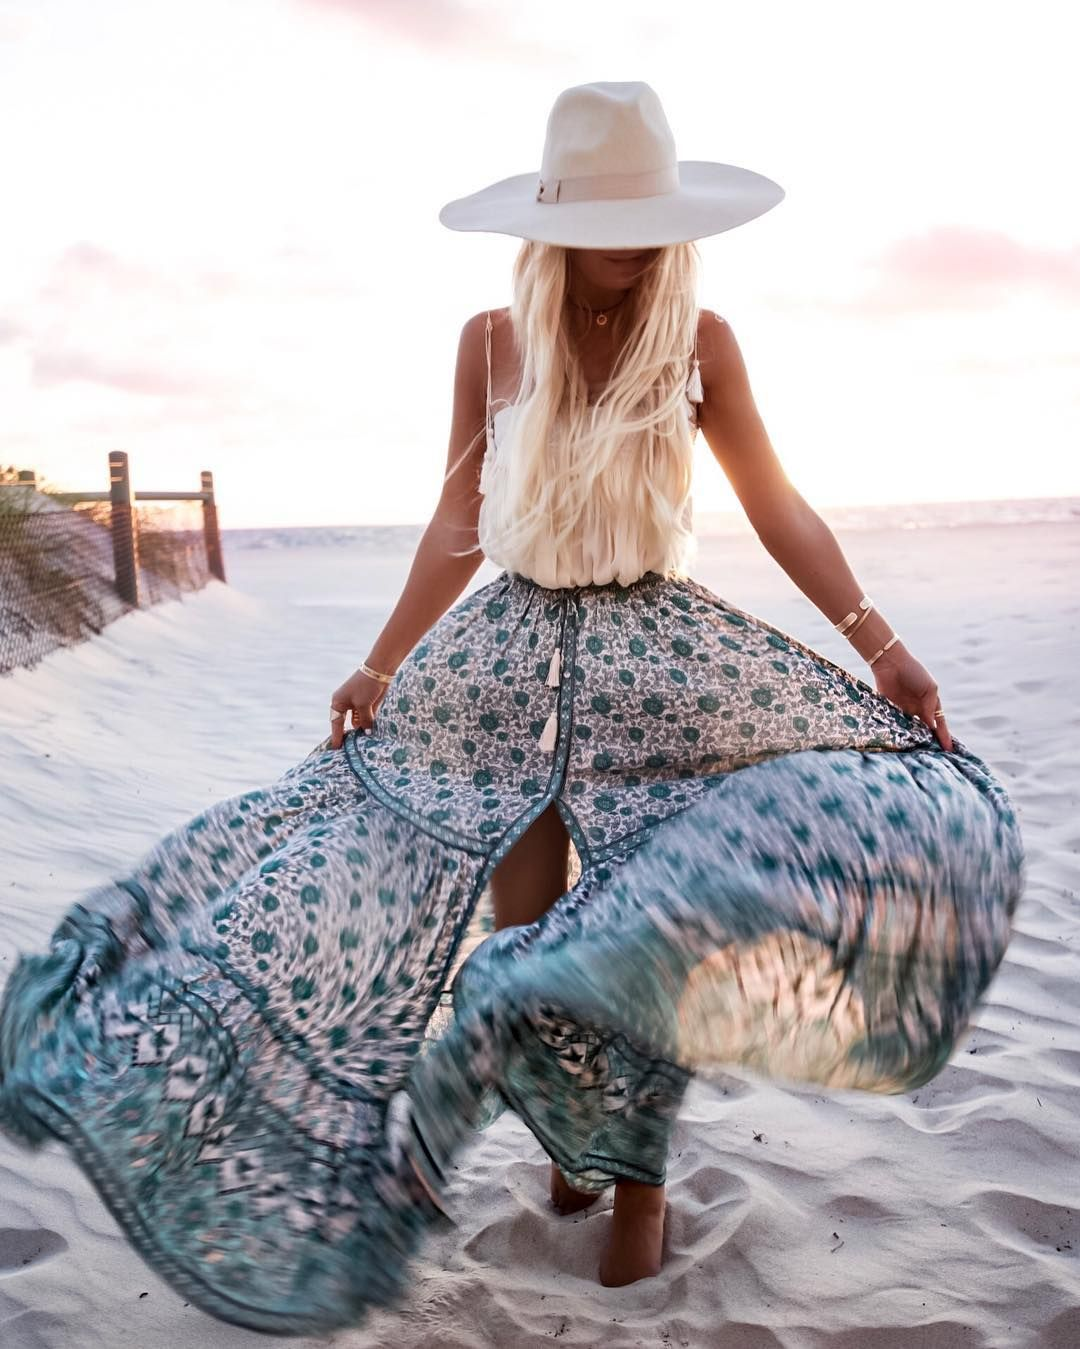 Gorgeous Gypsylovinlight Wearing Spell Kombi Maxi Click Image To Shop